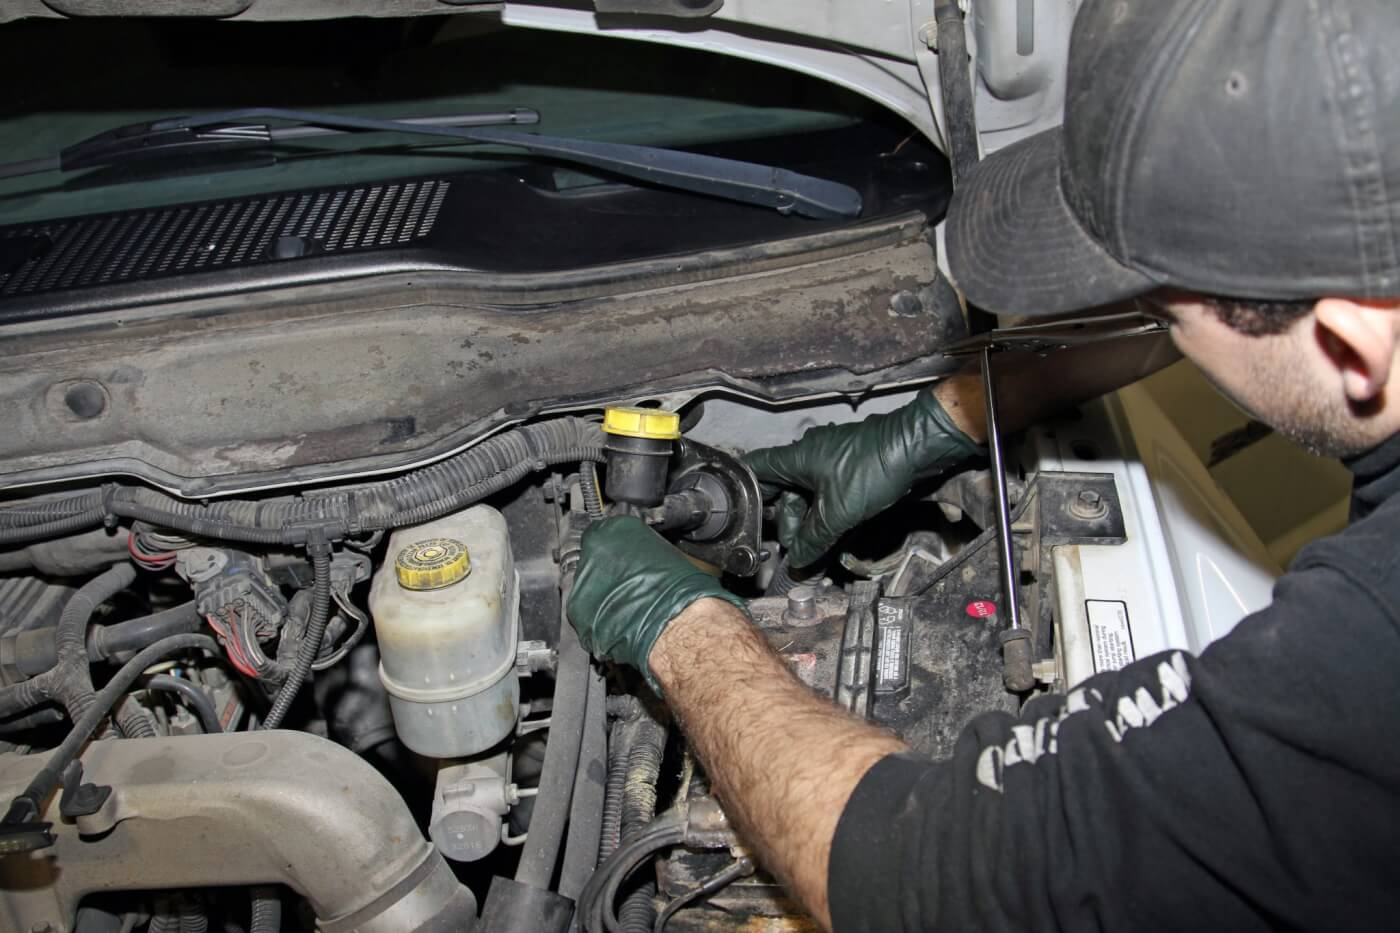 20. After lowering the truck, Meraz crawls under the dash to disconnect and unbolt the clutch master cylinder from the pedal and firewall. Then, he is able to pull the old hydraulic assembly out of the engine bay.